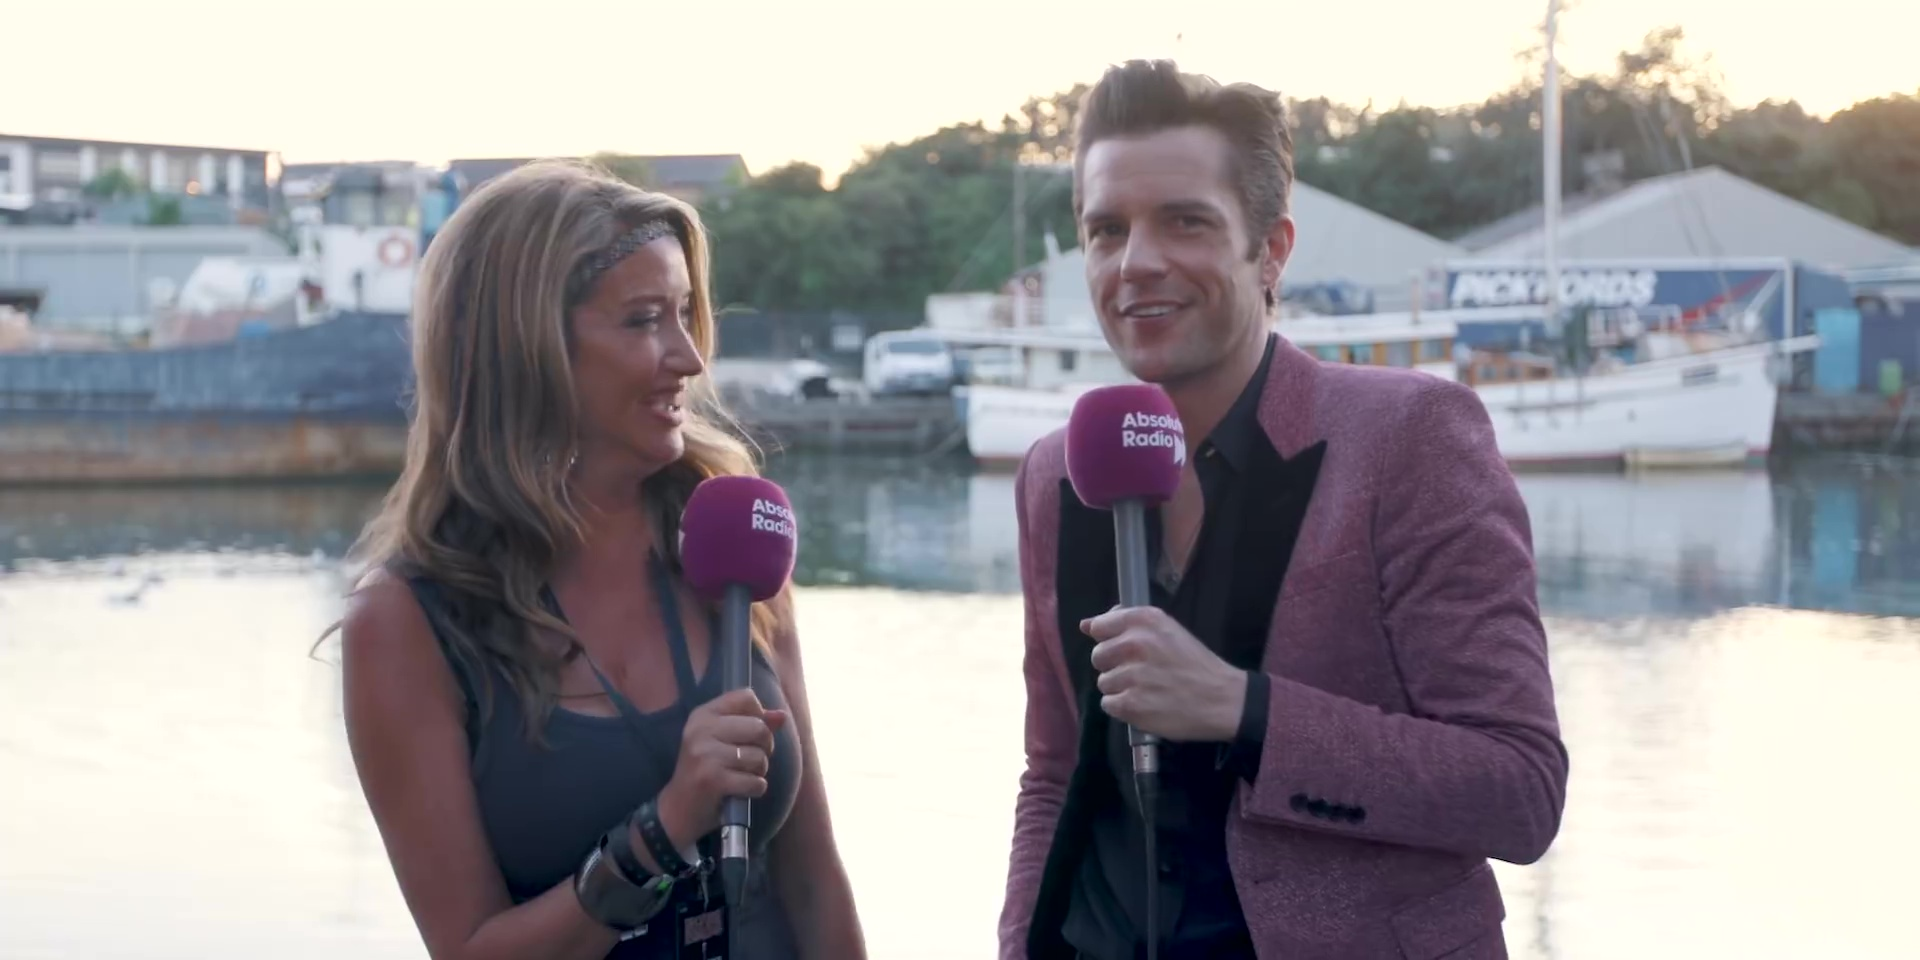 Intervista con Absolute Radio all'Isle of Wight Festival